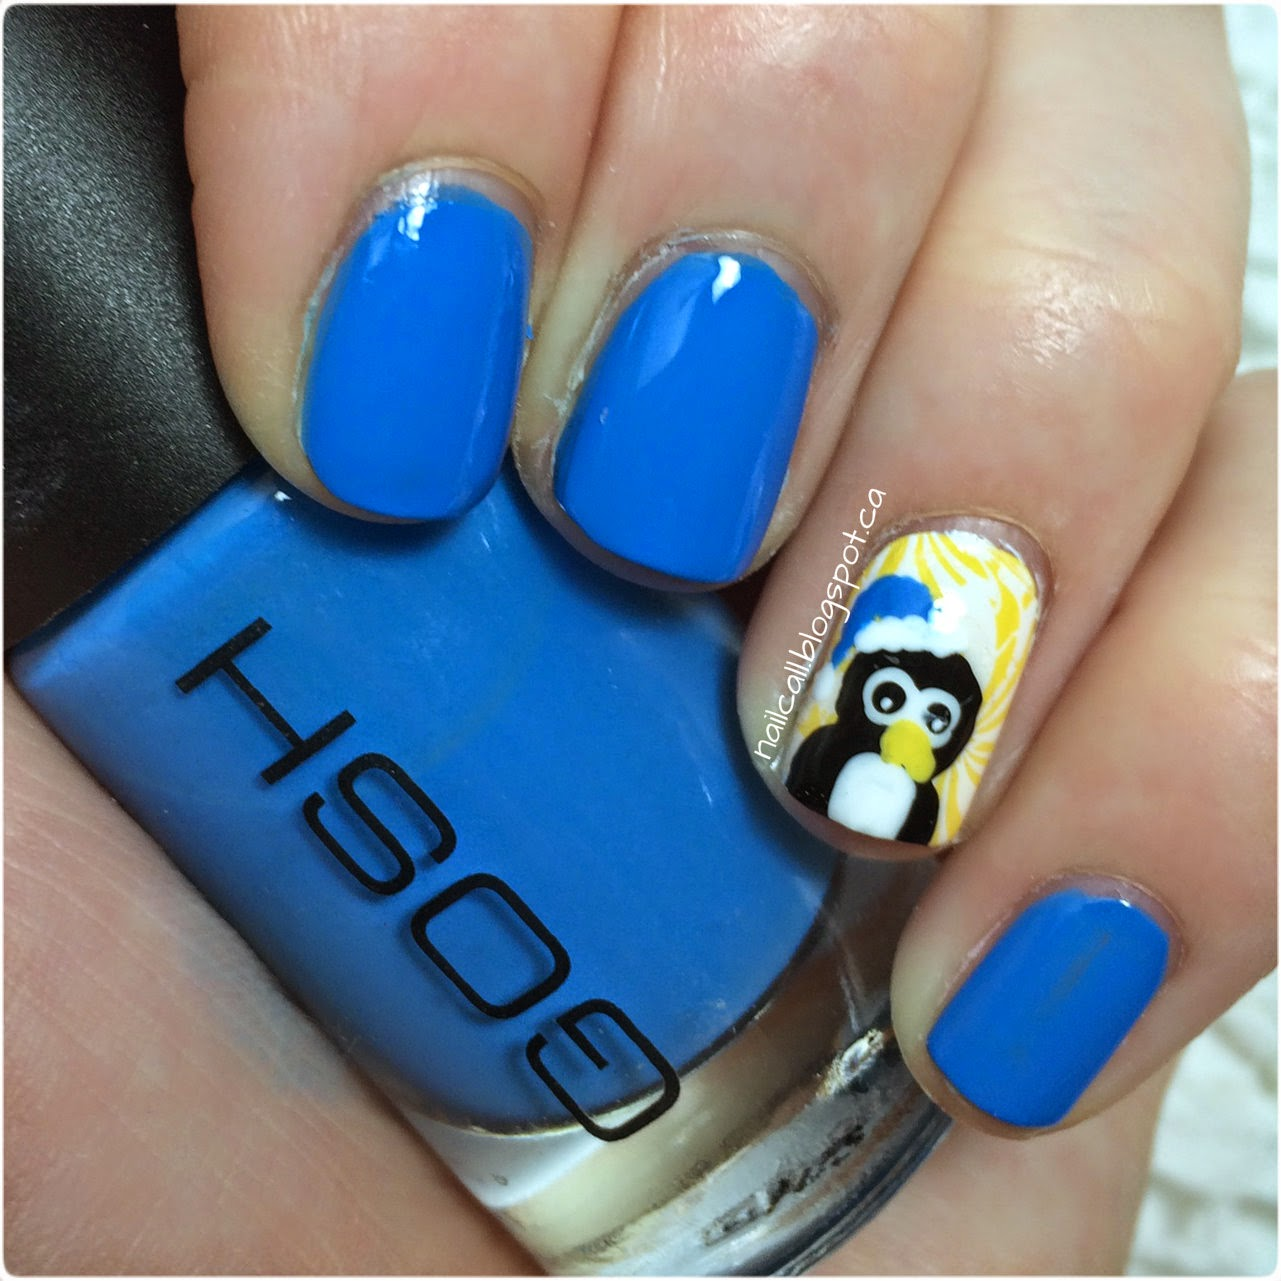 Blue nail polish with penguin accent nail